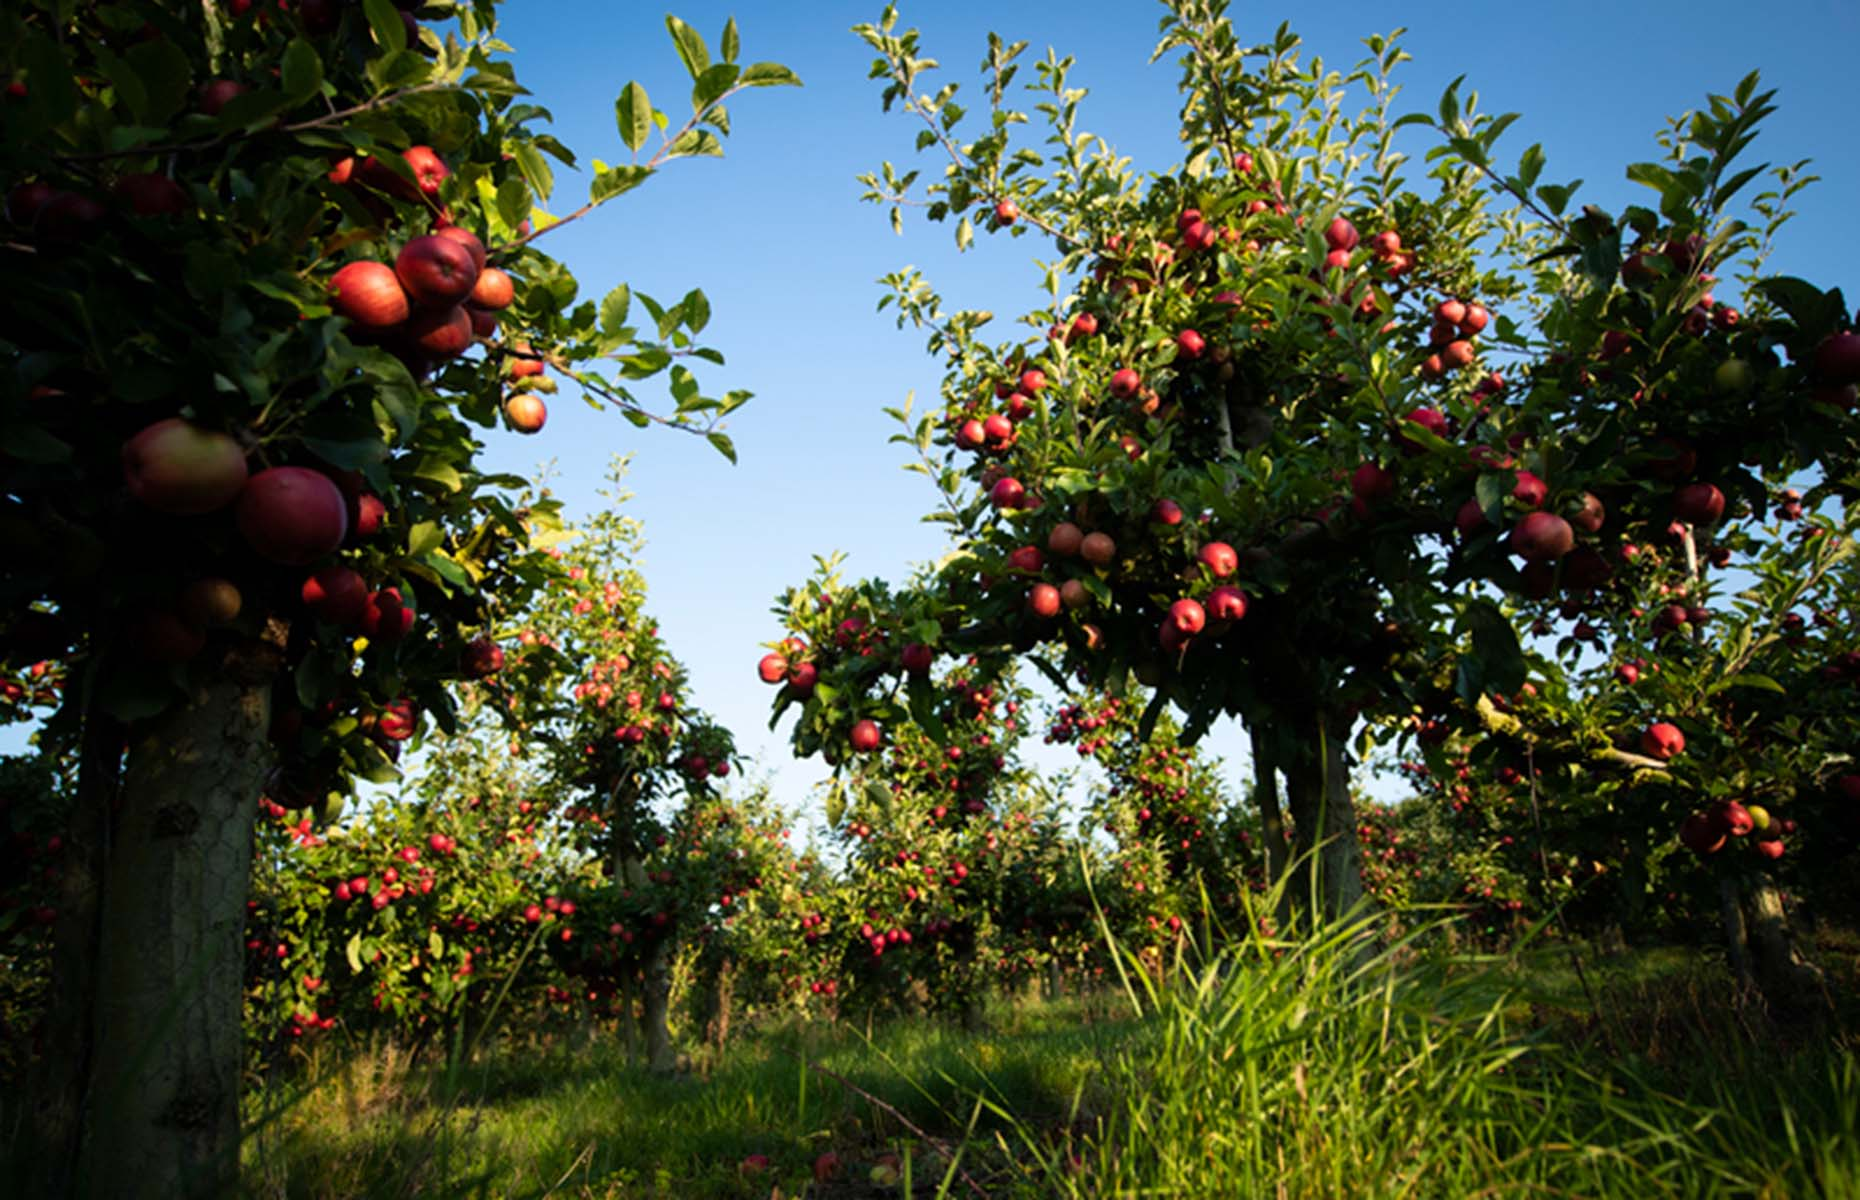 Ripe apples in an orchard (Image: British Apples & Pears Ltd.)